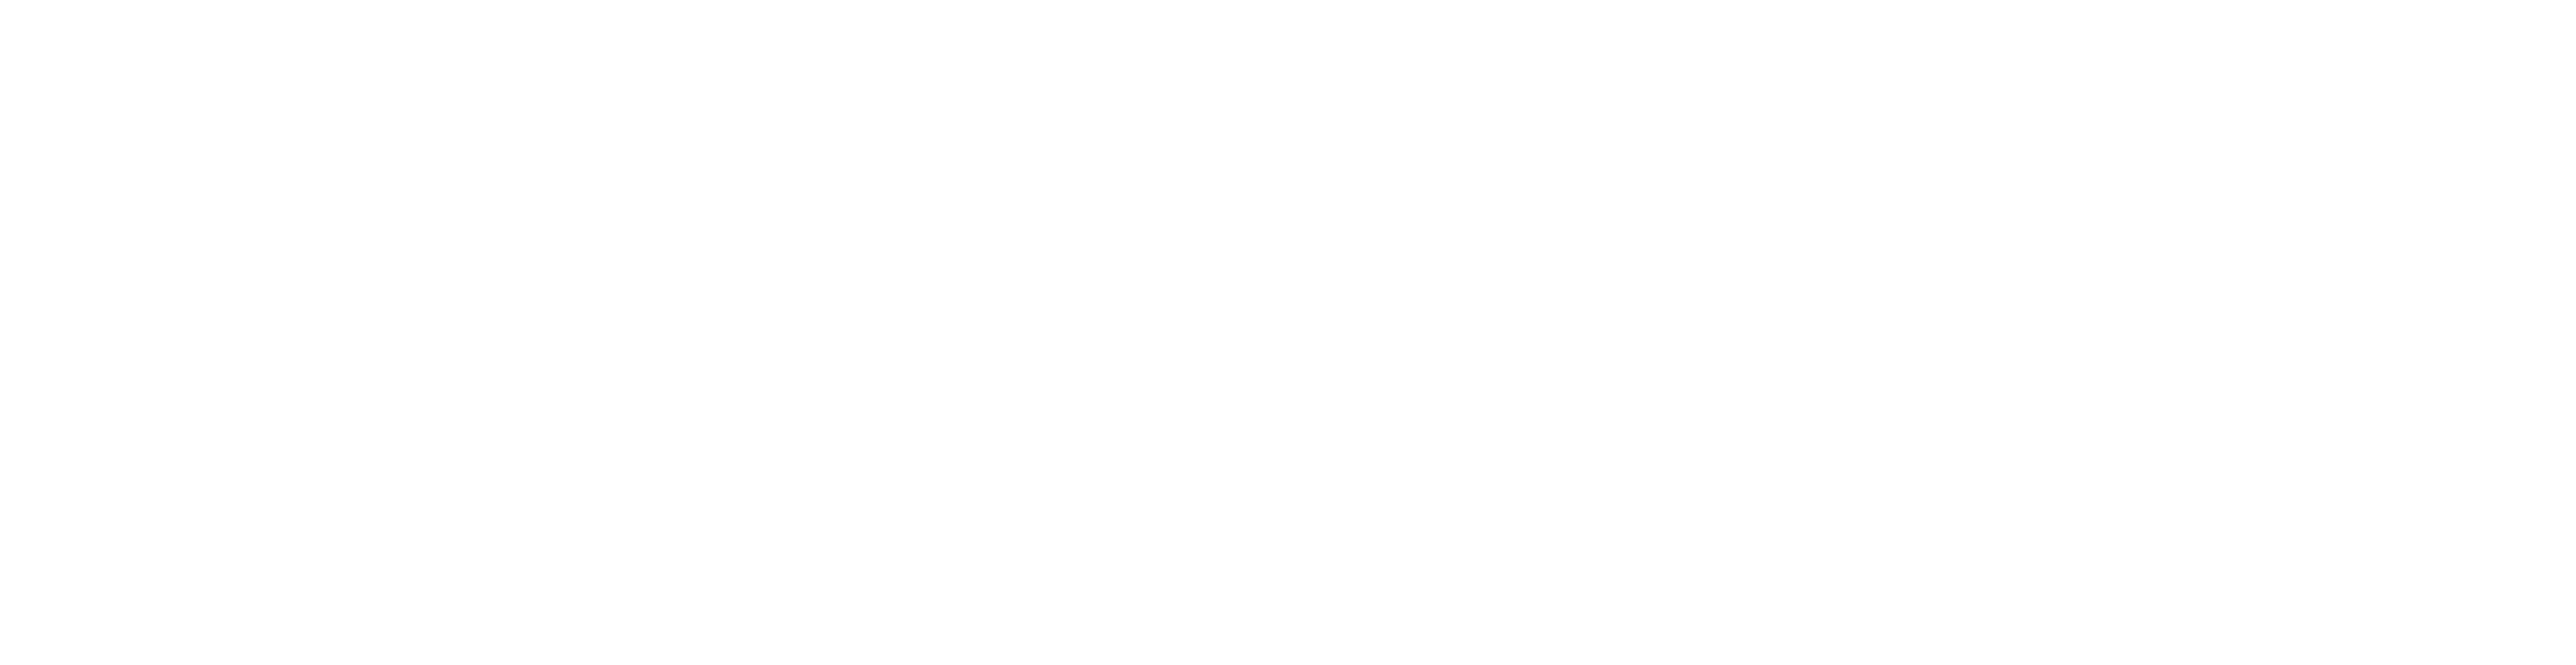 Vulture Culture Out July 05